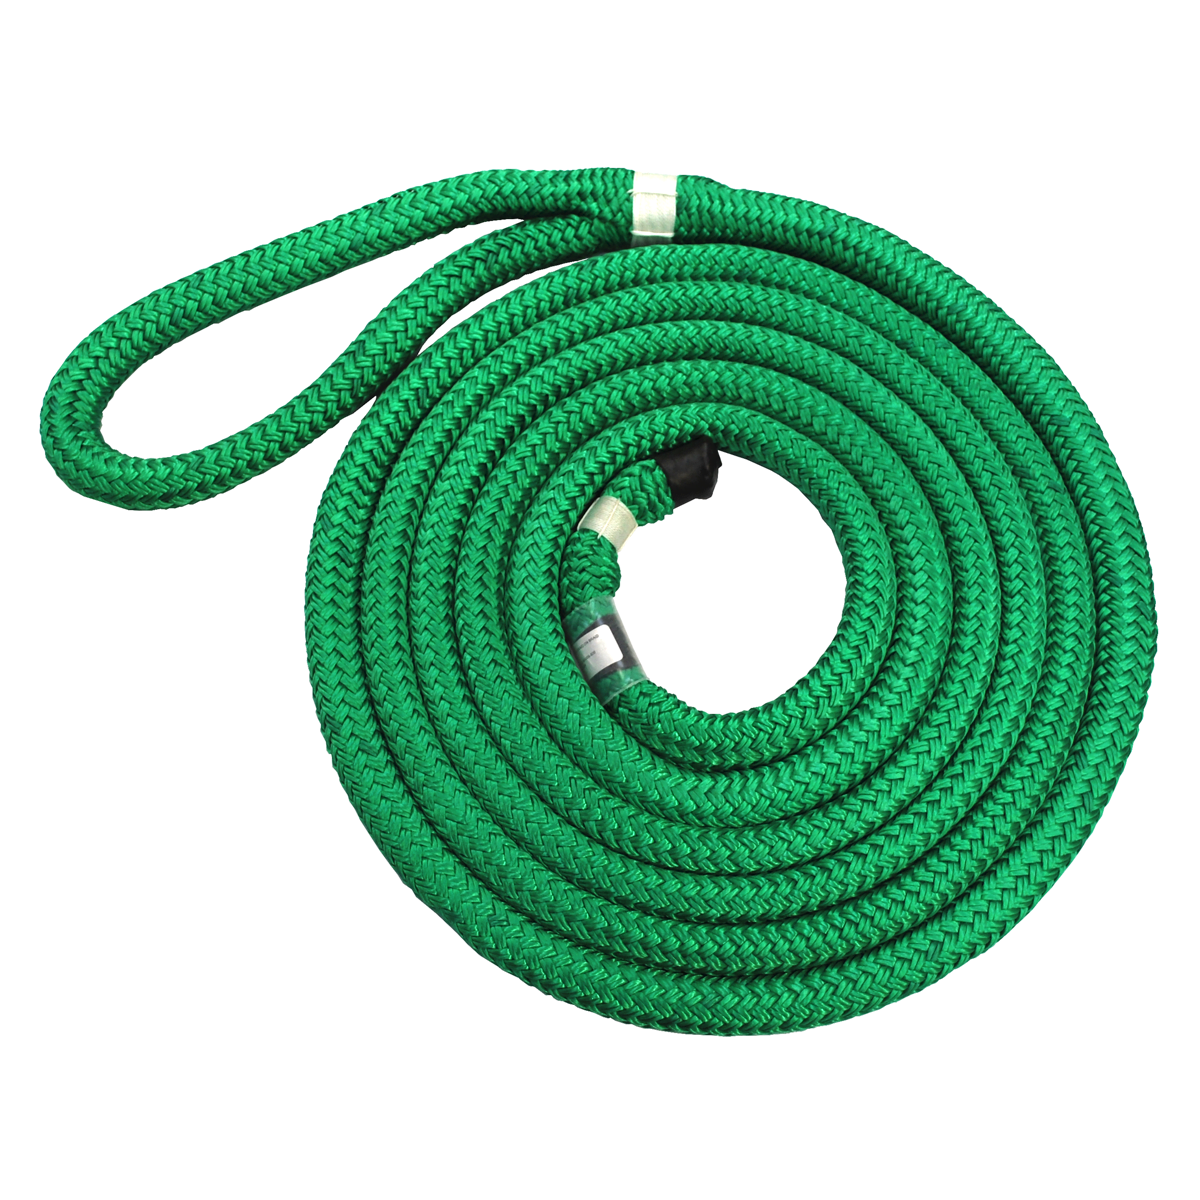 English Braid Alliance Rigging Sling 20mm 5.0m (GREEN) 20cm Eye